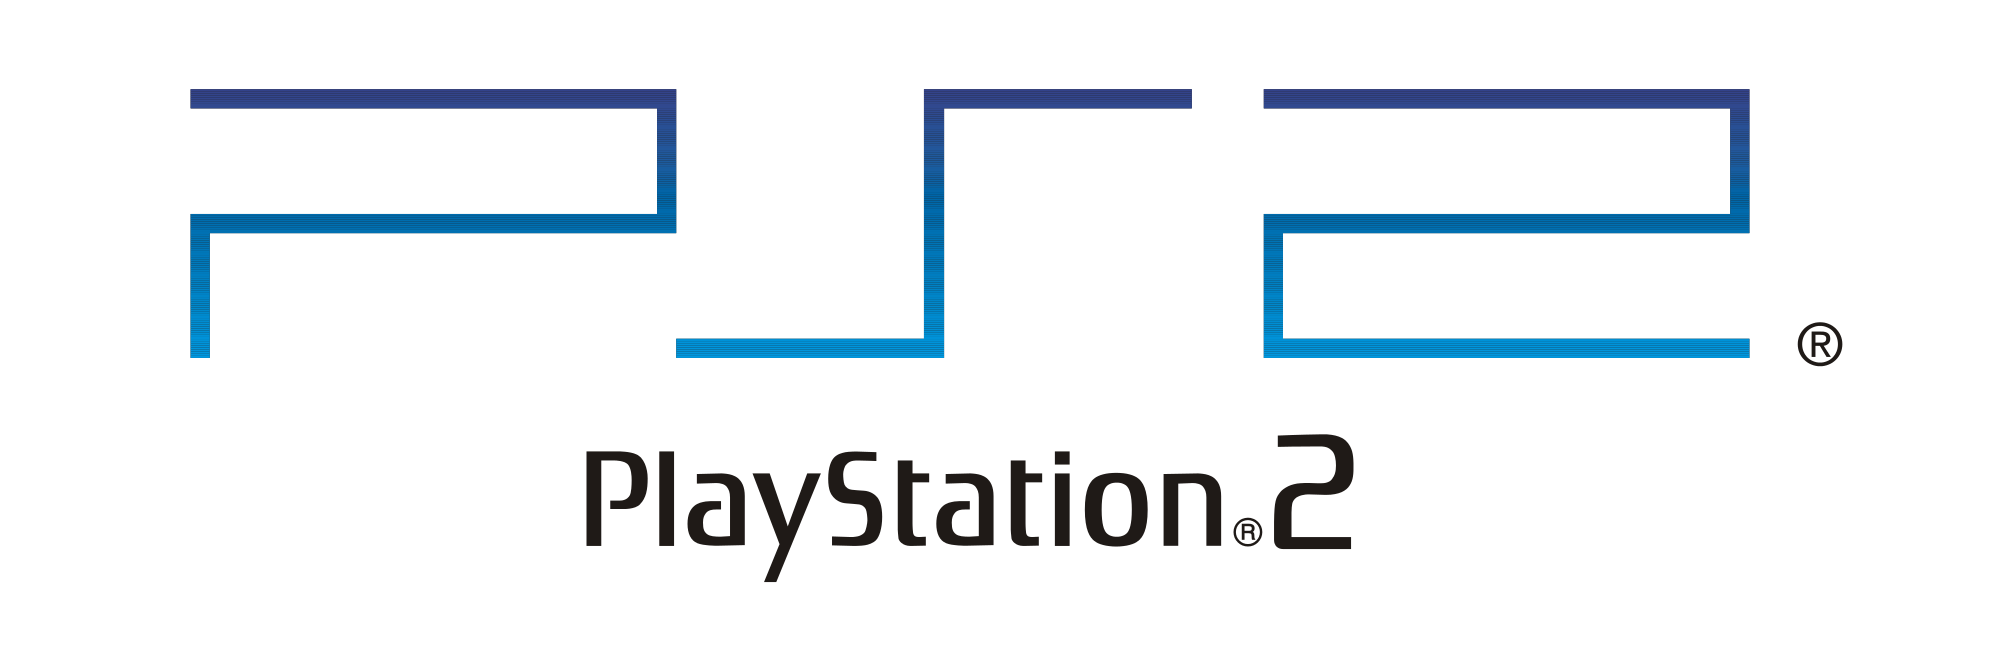 Playstation 2 logo png. File svg wikimedia commons